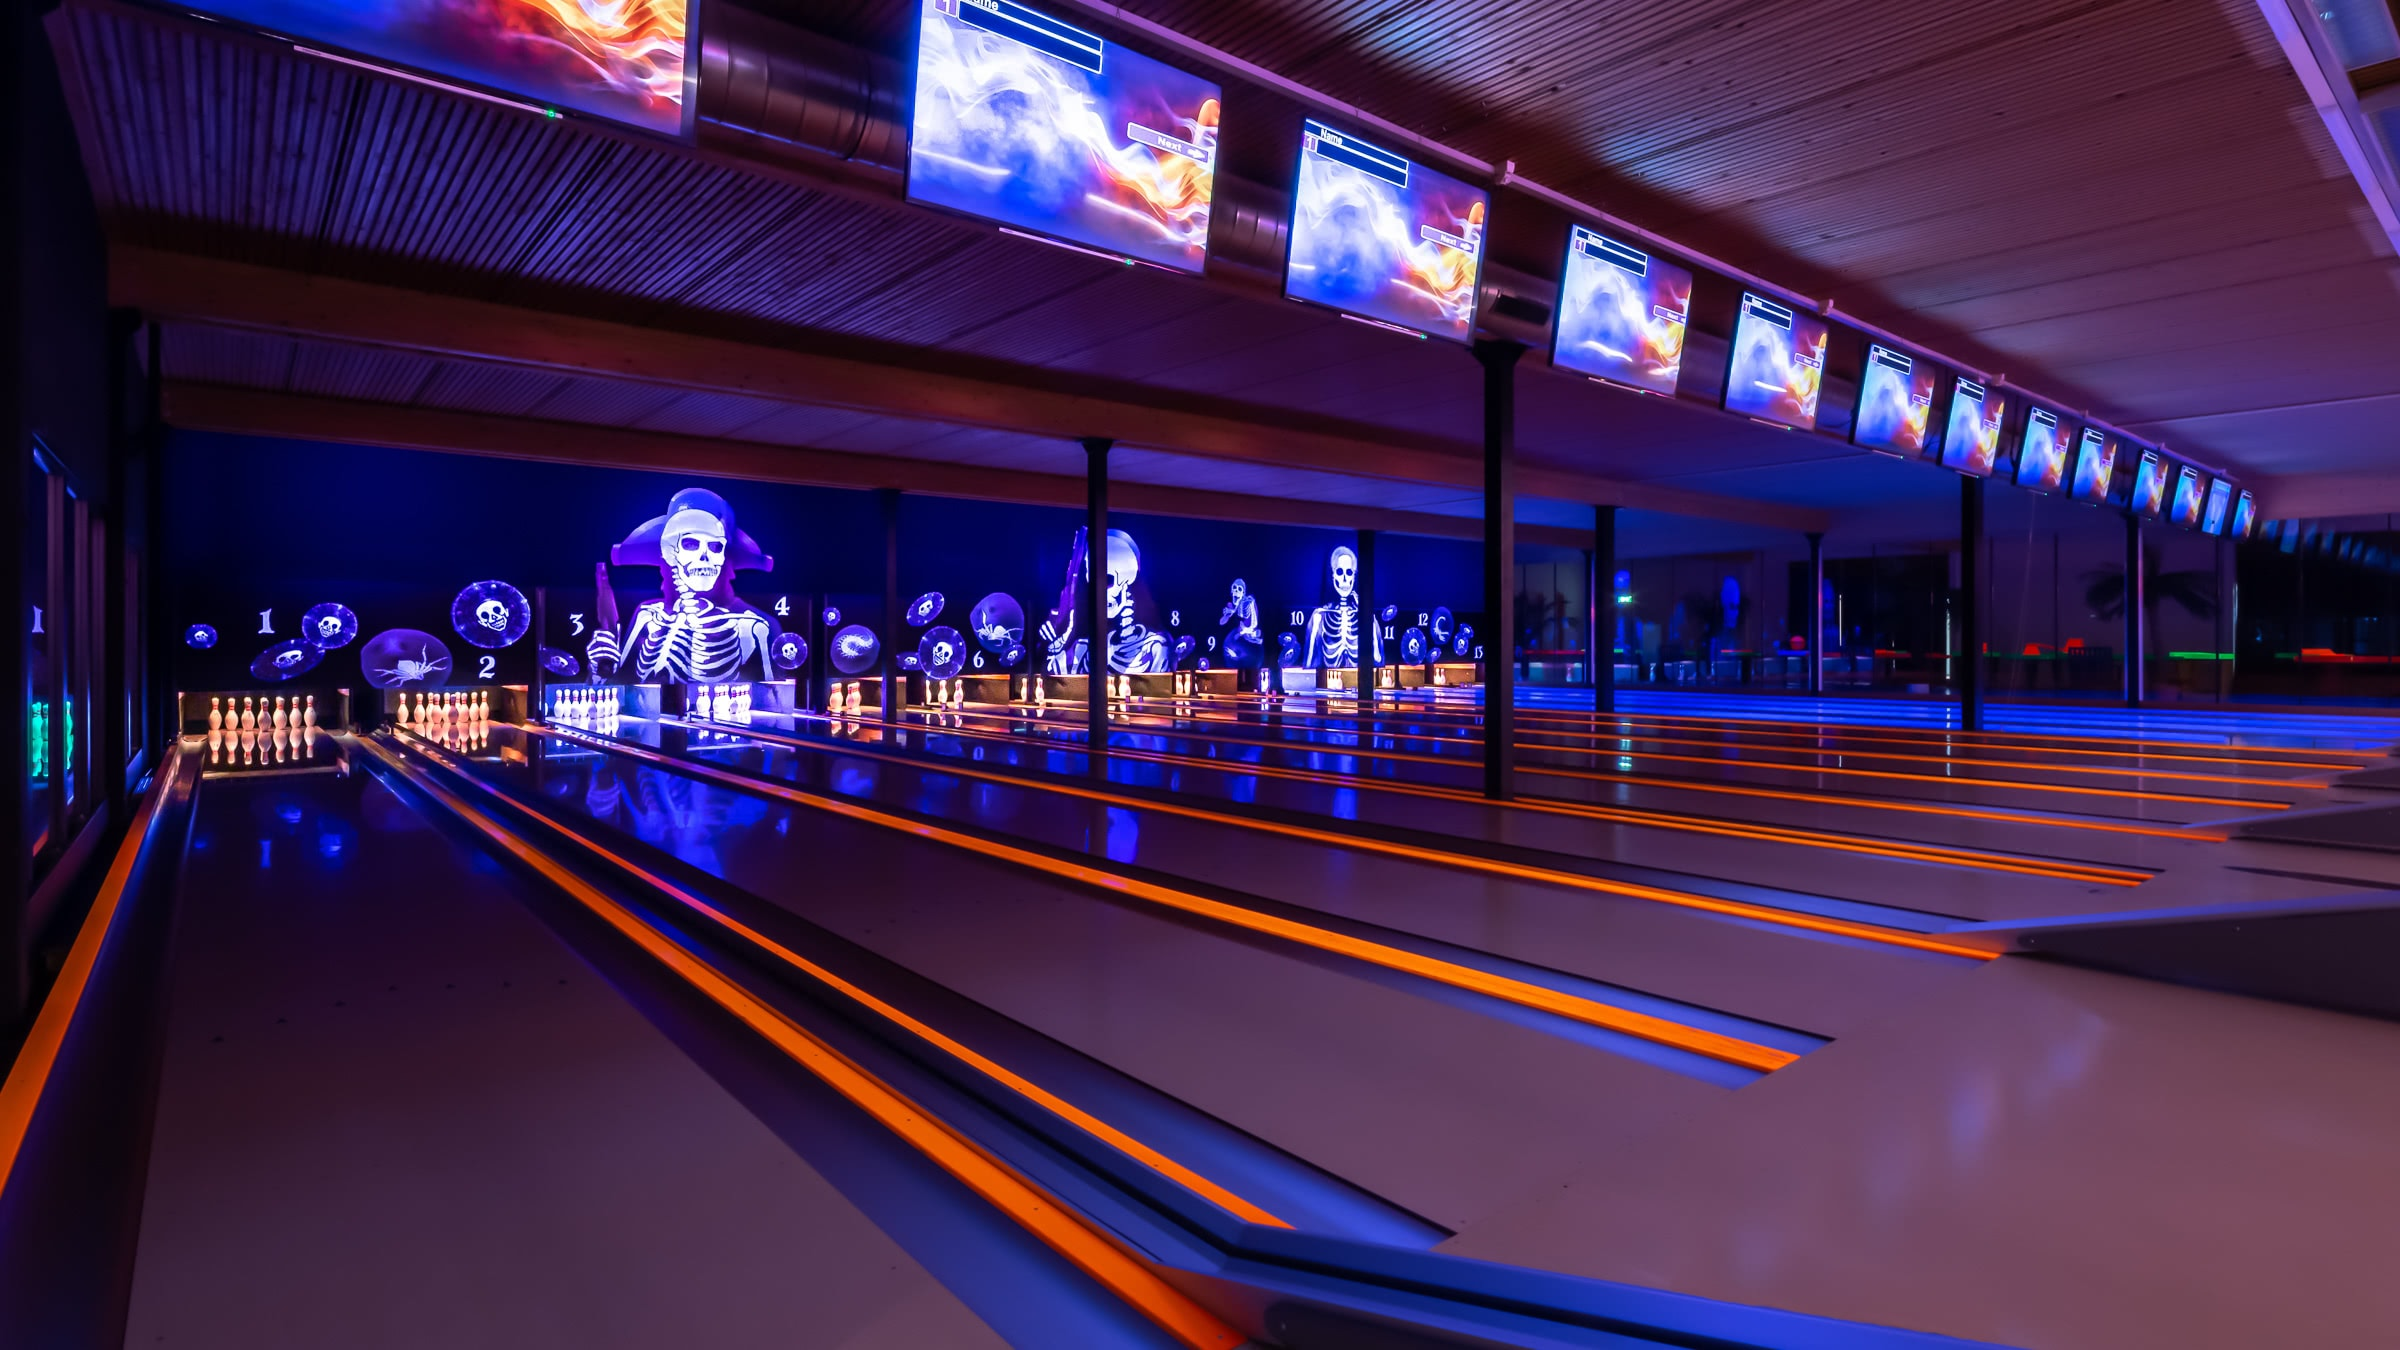 FUN BOWL Stockmatt Bowling Center Affoltern am Albis